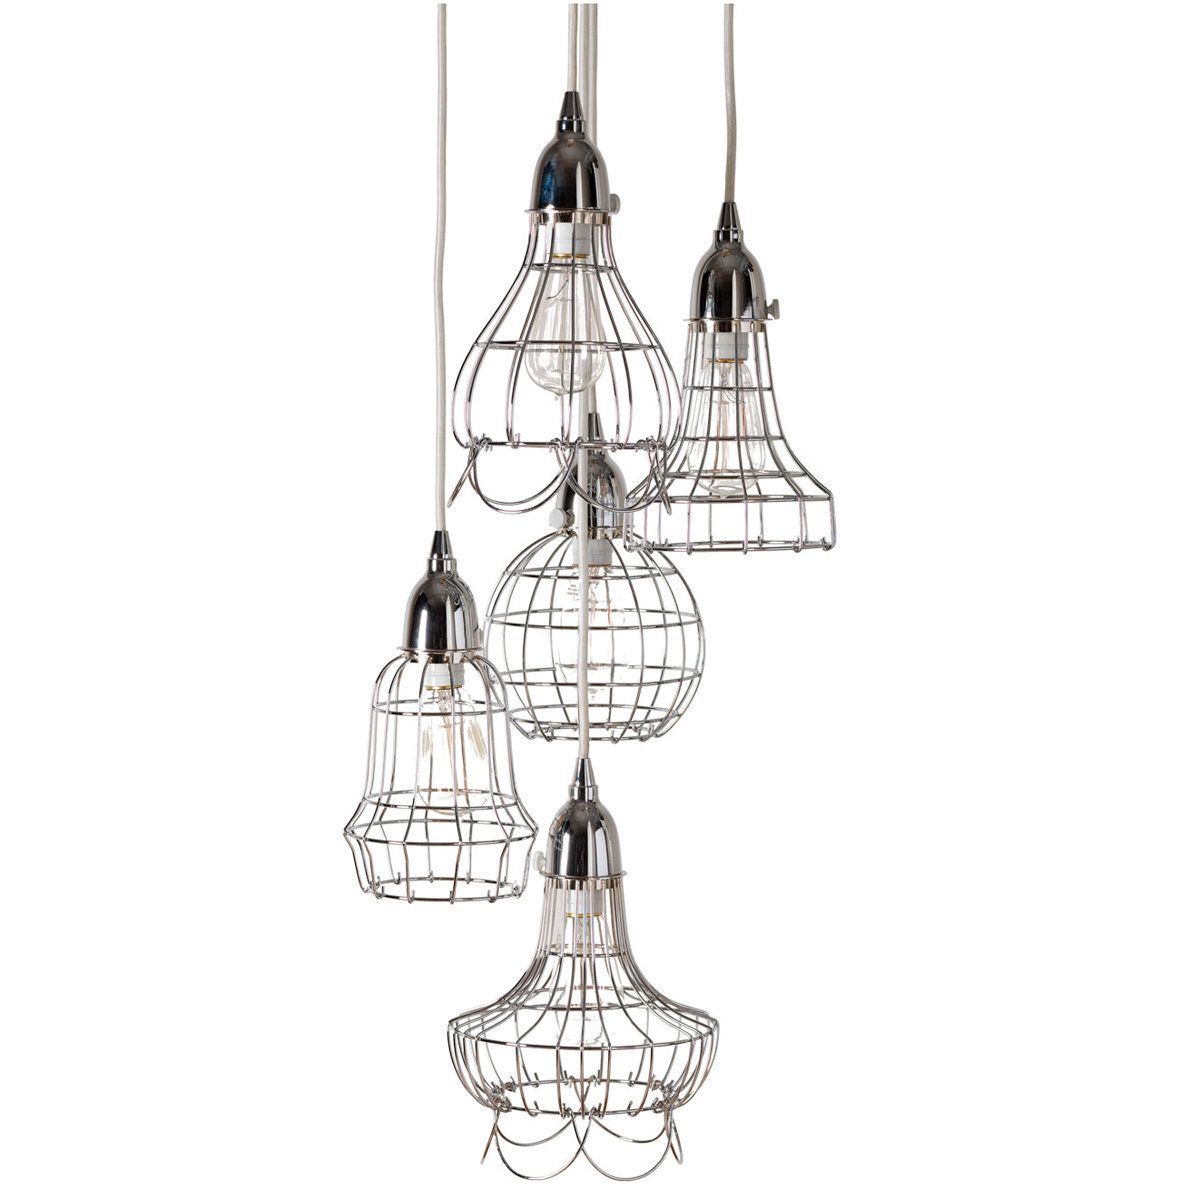 Industrial Cage Work Light Chandelier Pendant Lamp Design